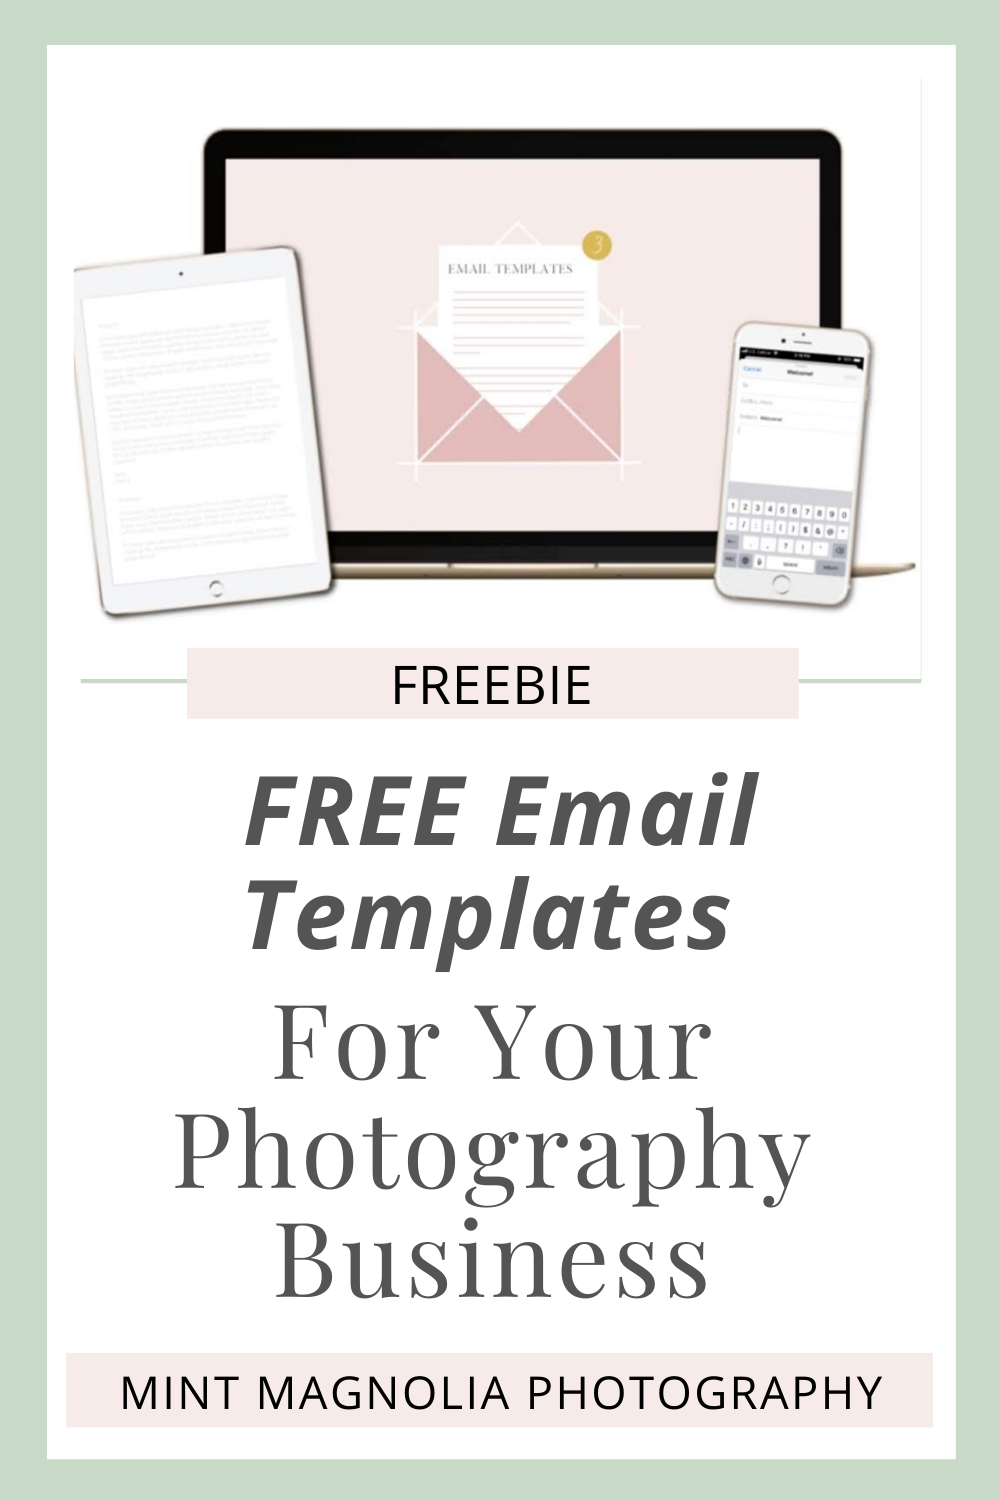 Free Email Templates for Photographers Mint Magnolia